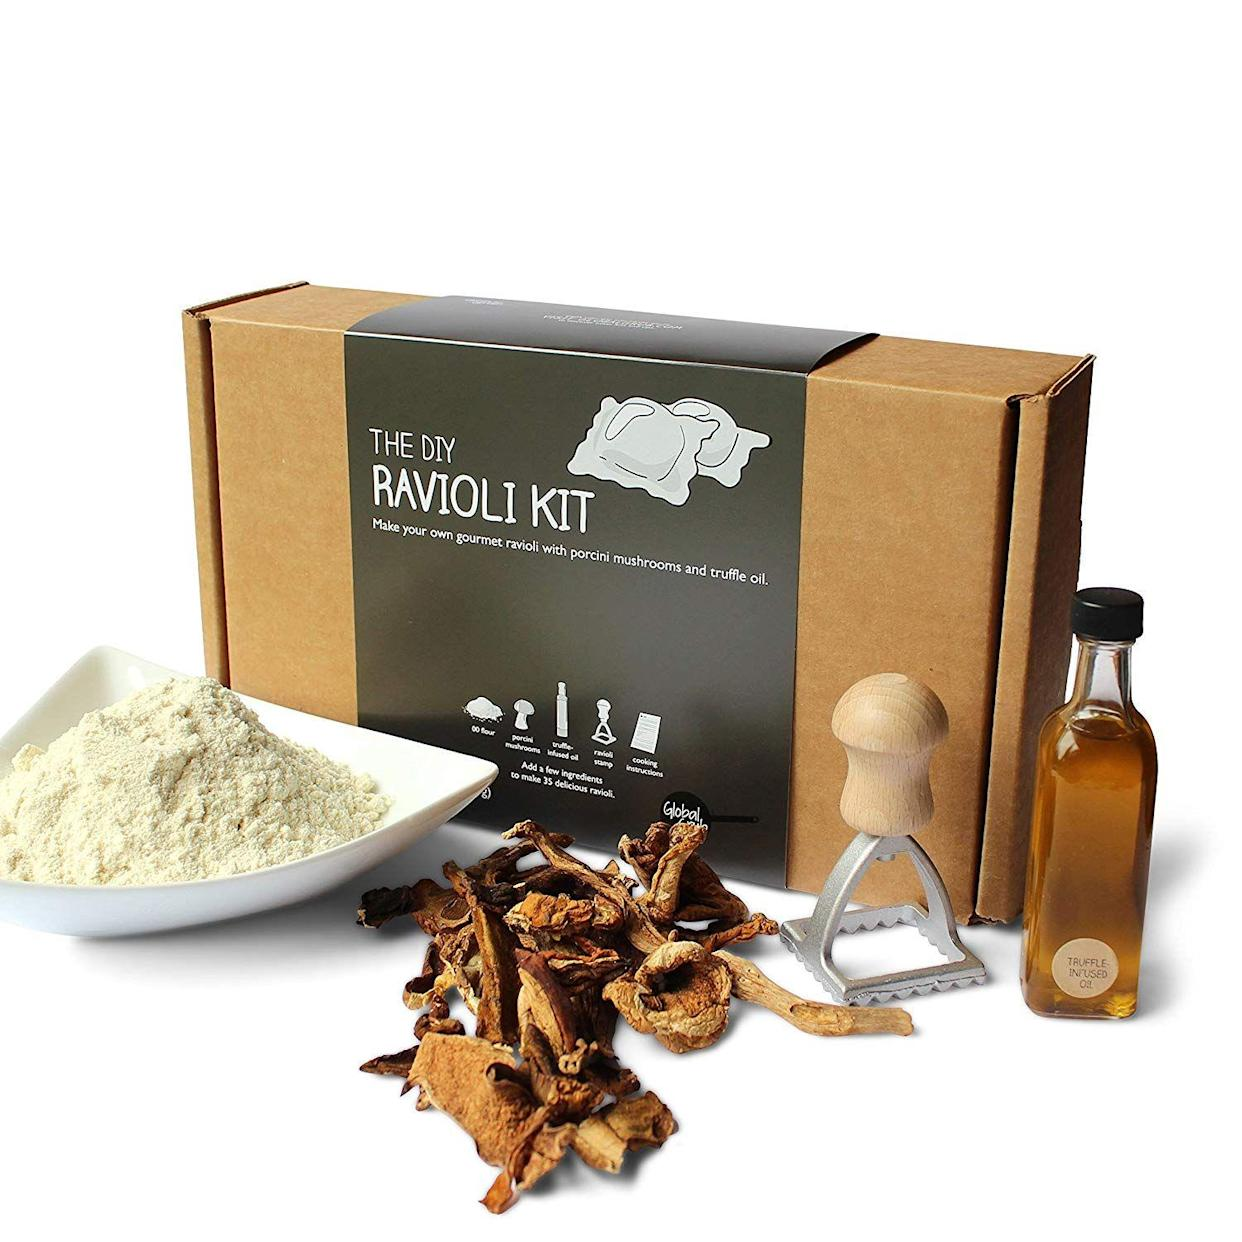 "<p><strong>The Gift: Ravioli-Making Kit</strong><br>Nothing says, ""team work makes the dream work,"" like making raviolis together at home.</p> <br> <br> <strong>The DIY</strong> Ravioli Kit, $28.49, available at <a href=""https://www.amazon.com/DIY-Ravioli-Kit-Step-Step/dp/B06XWW7LHR/ref=sr_1_9_a_it"" rel=""nofollow noopener"" target=""_blank"" data-ylk=""slk:Amazon"" class=""link rapid-noclick-resp"">Amazon</a>"